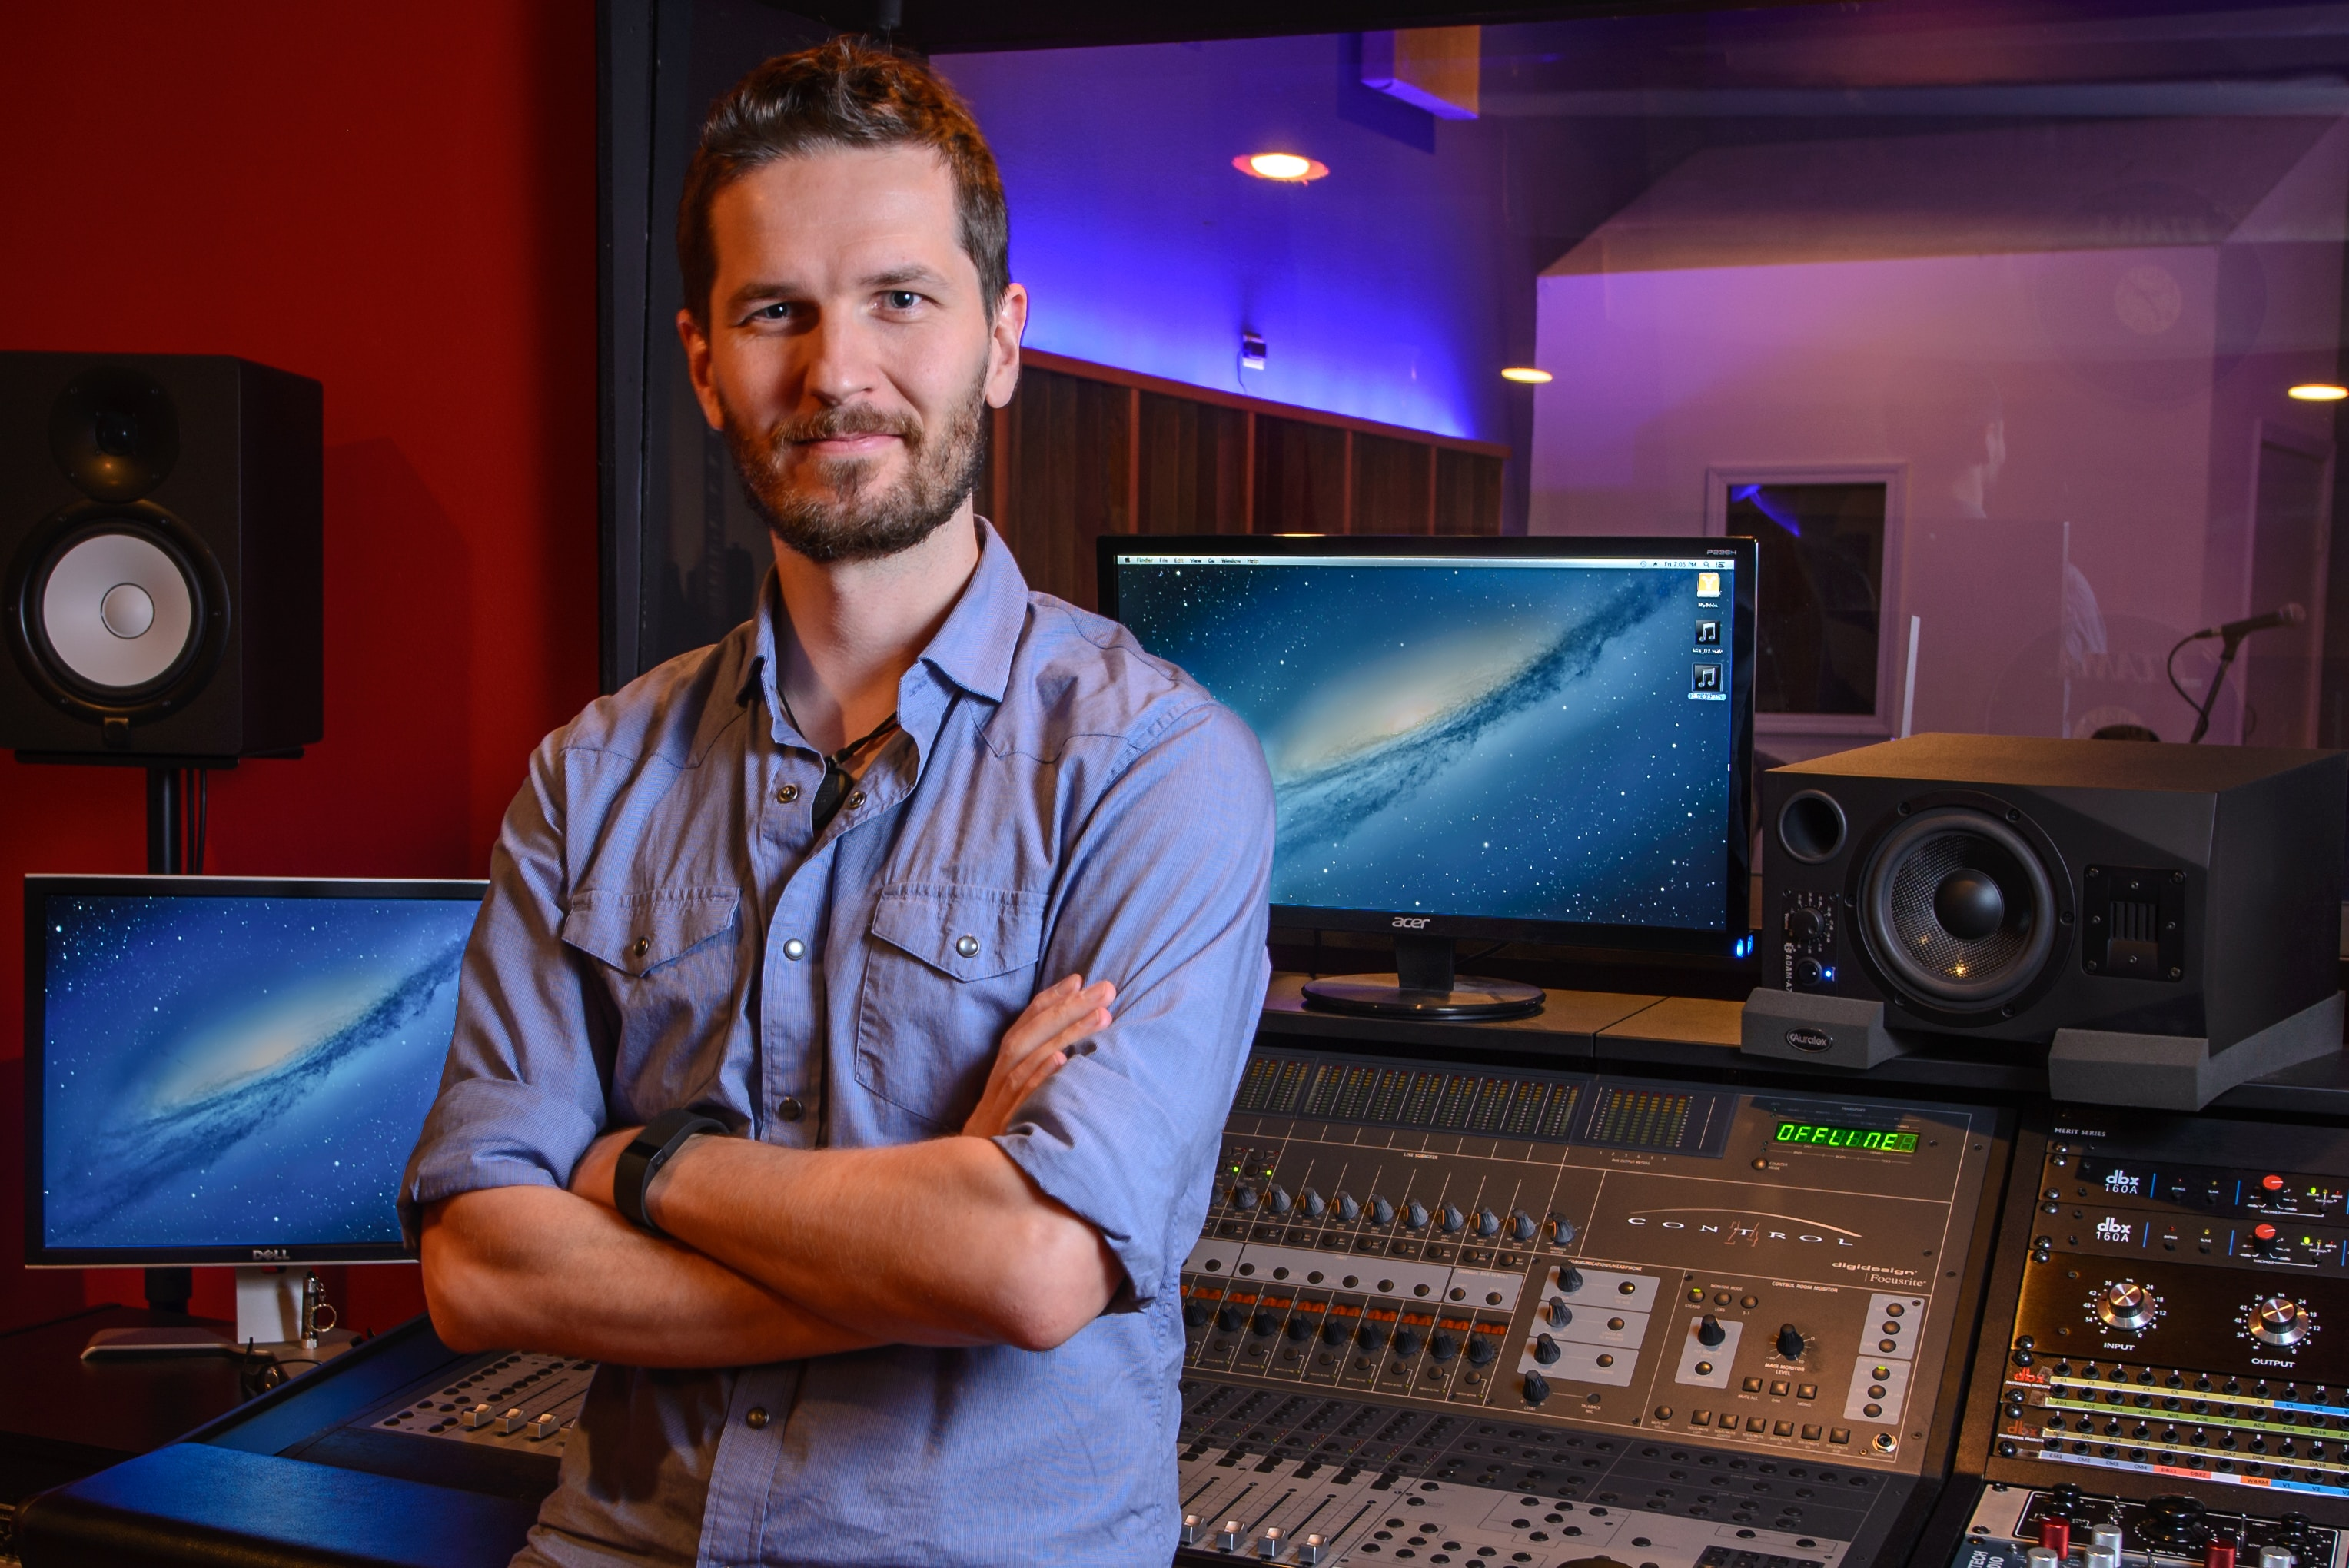 A recording engineer standing at the sound board in a recording studio.